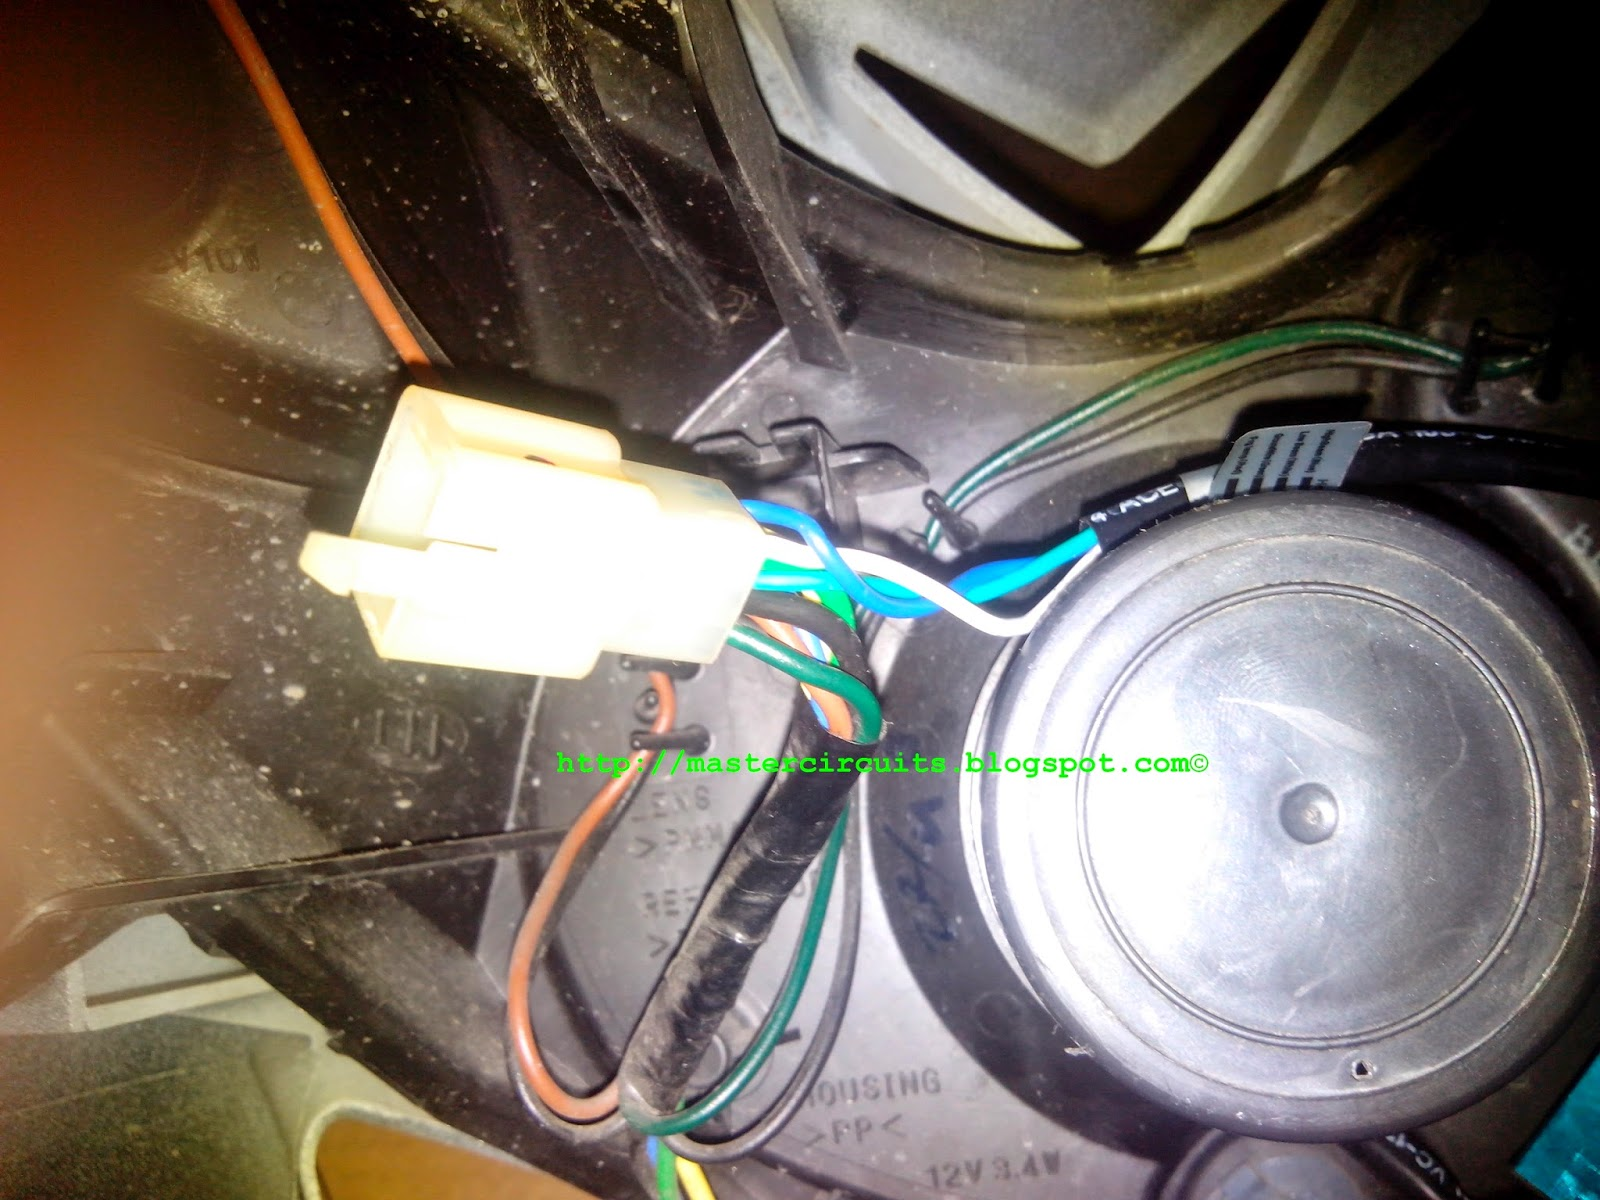 hight resolution of  wires to preserve the original wiring in case problem arises with the led replacement and always ready for the refitting of the original bulb headlight